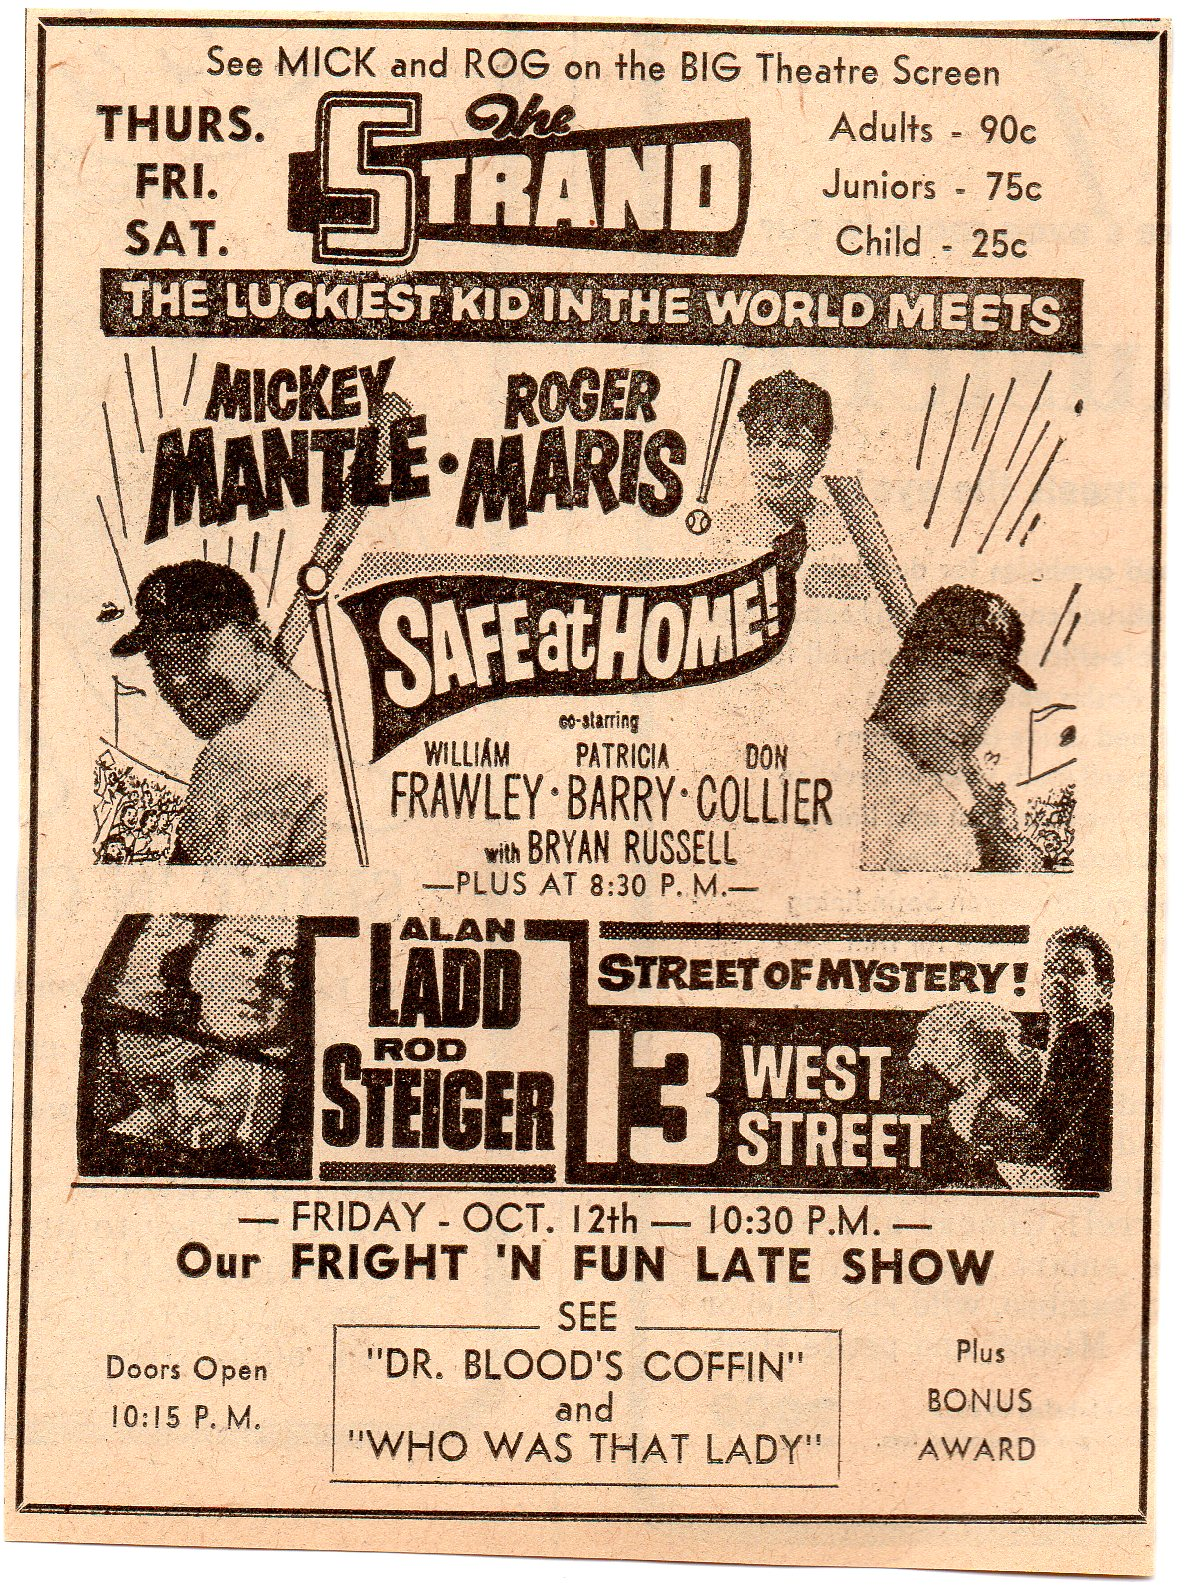 1962 hastings, nebraska 10/10, the strand theatre